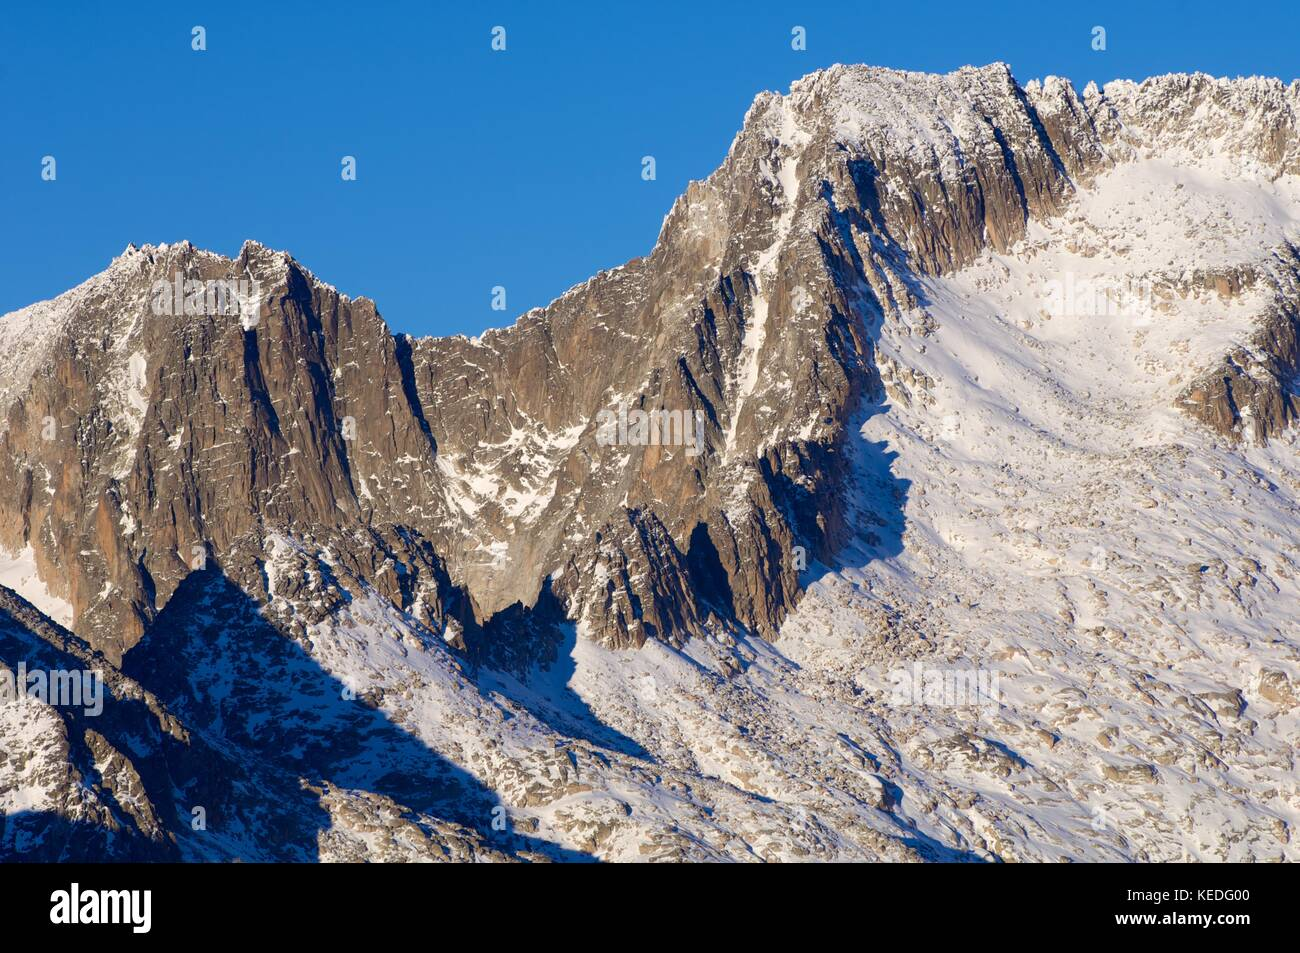 Maladeta Peak and Maldito Peak in the Maladeta Massif, Posets Maladeta Natural Park, Huesca, Aragon, Pyrenees, Spain Stock Photo